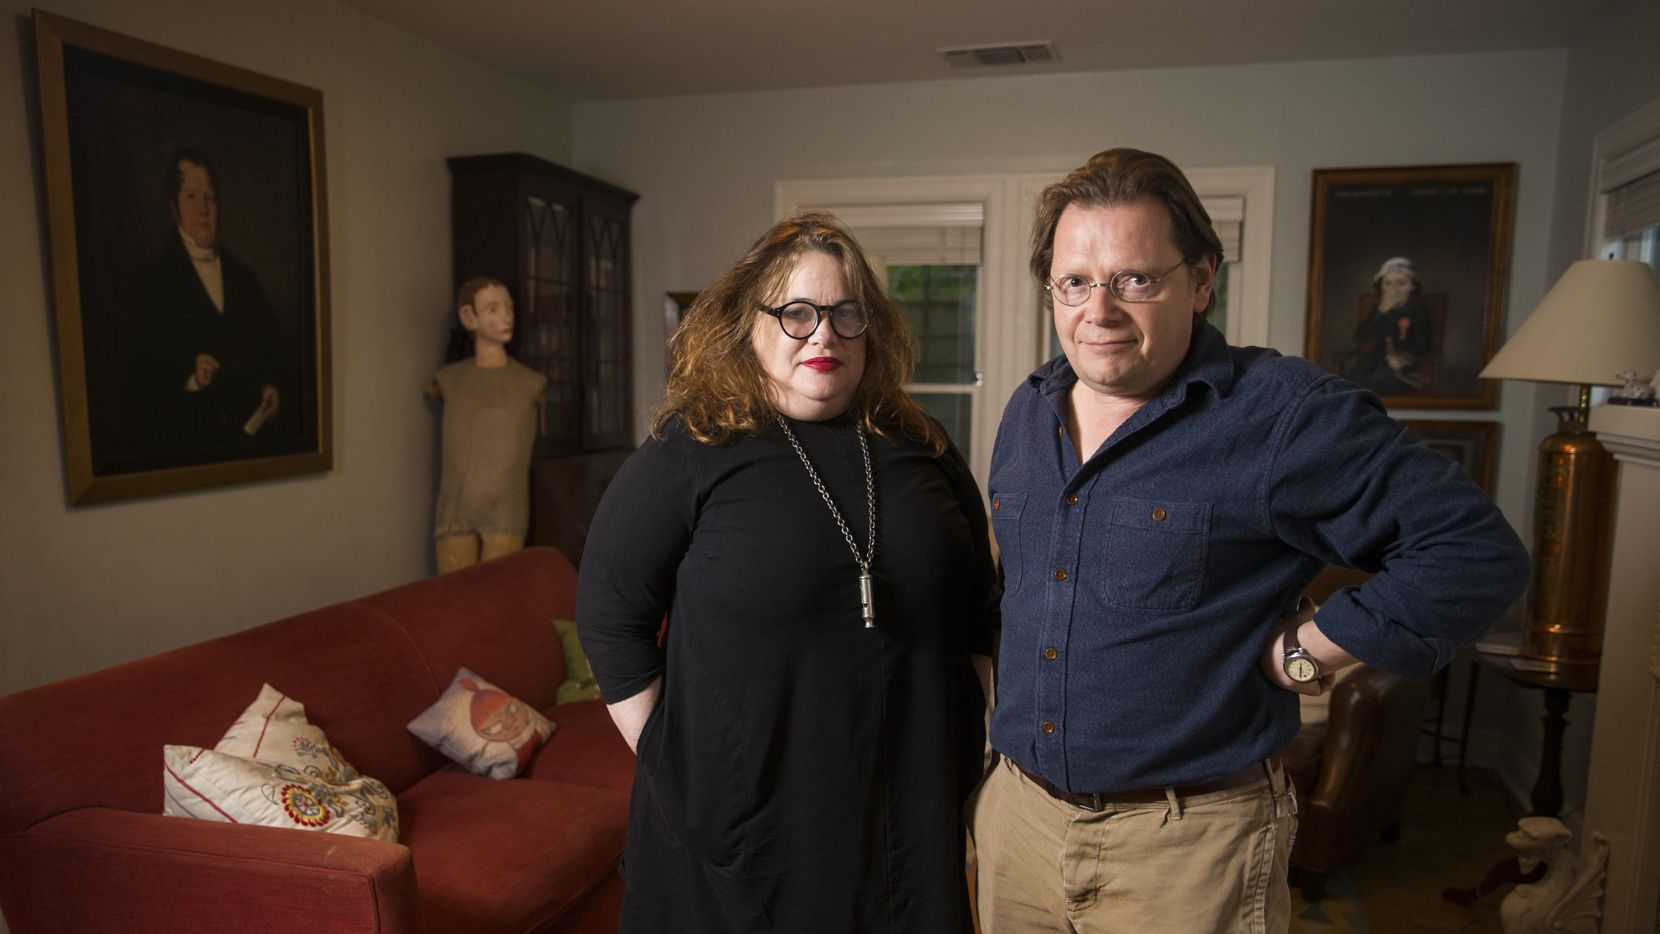 Authors and spouses Elizabeth McCracken and Edward Carey pose for a portrait in their home on April 25, 2019 in Austin.